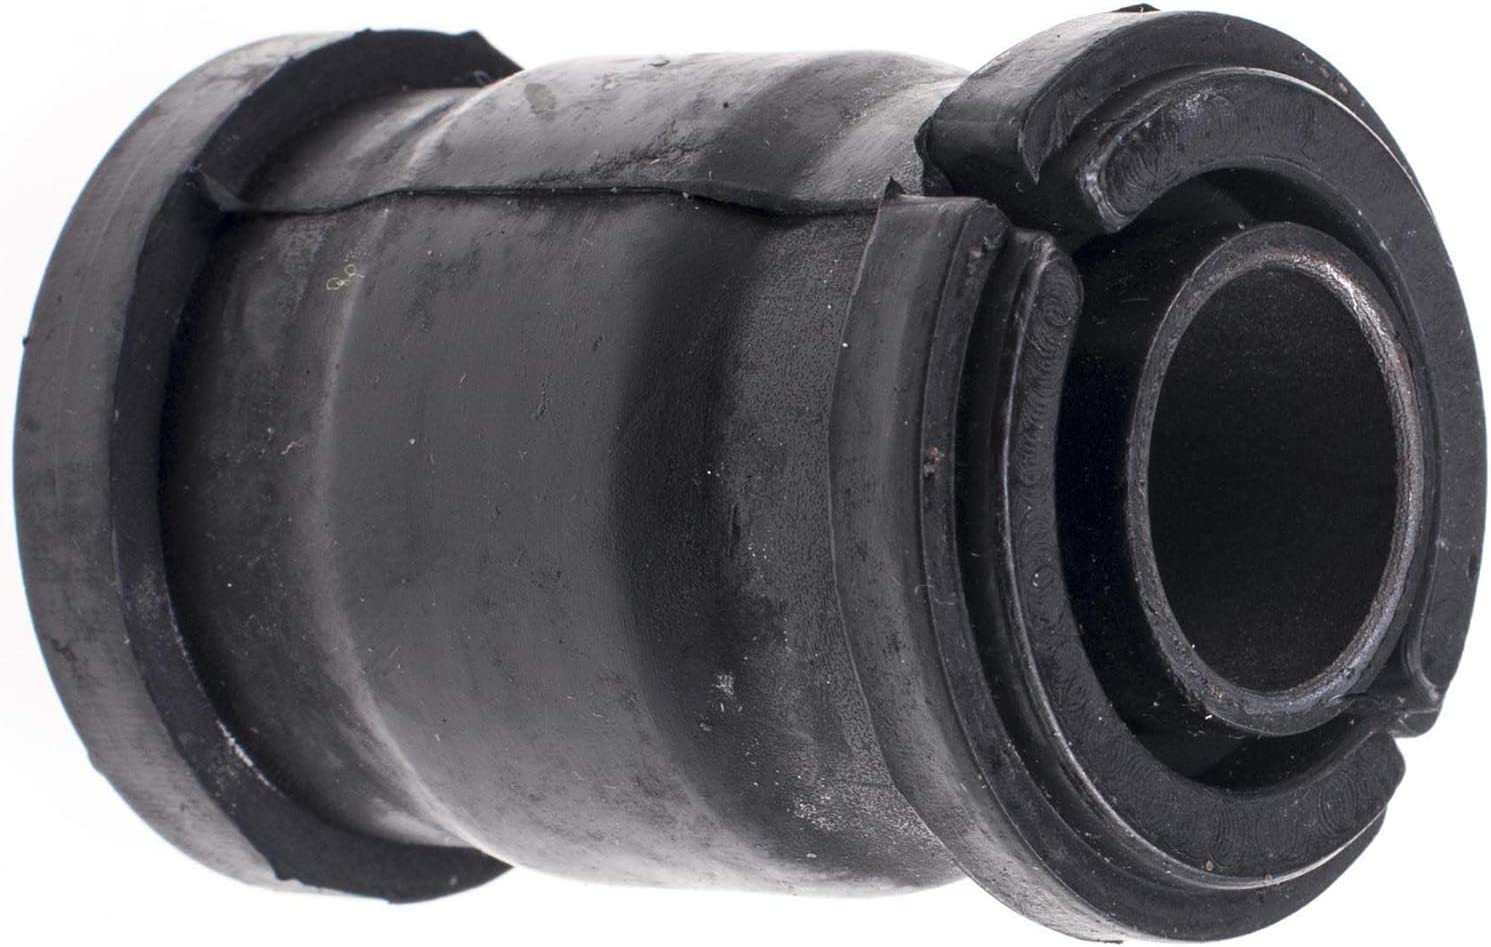 Special Bombing free shipping price APDTY 146132 Bushing 48620-32040 Replaces